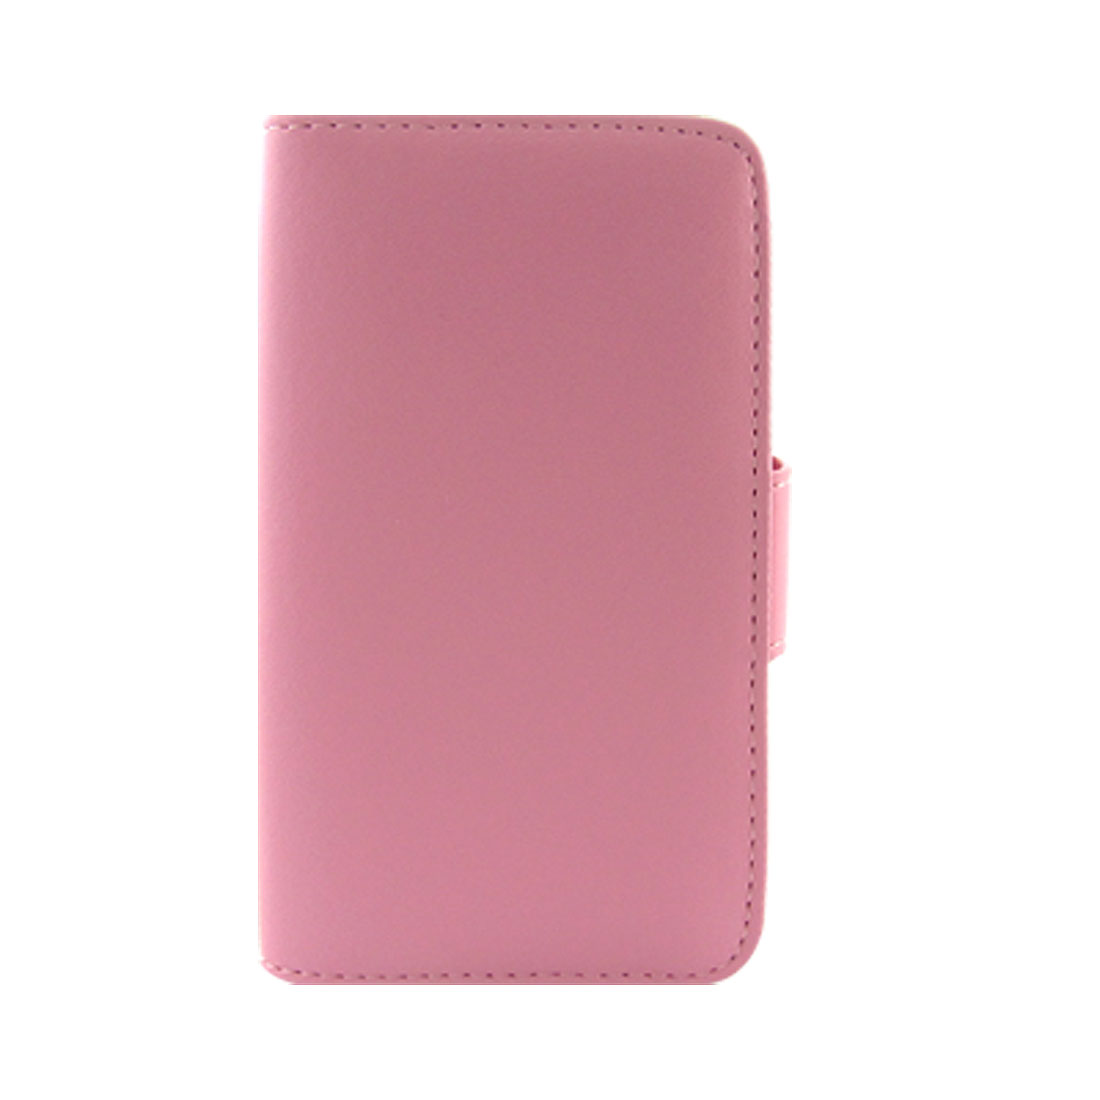 Pink Side Flap Button Closure Faux Leather Pouch Holder for iPhone 4